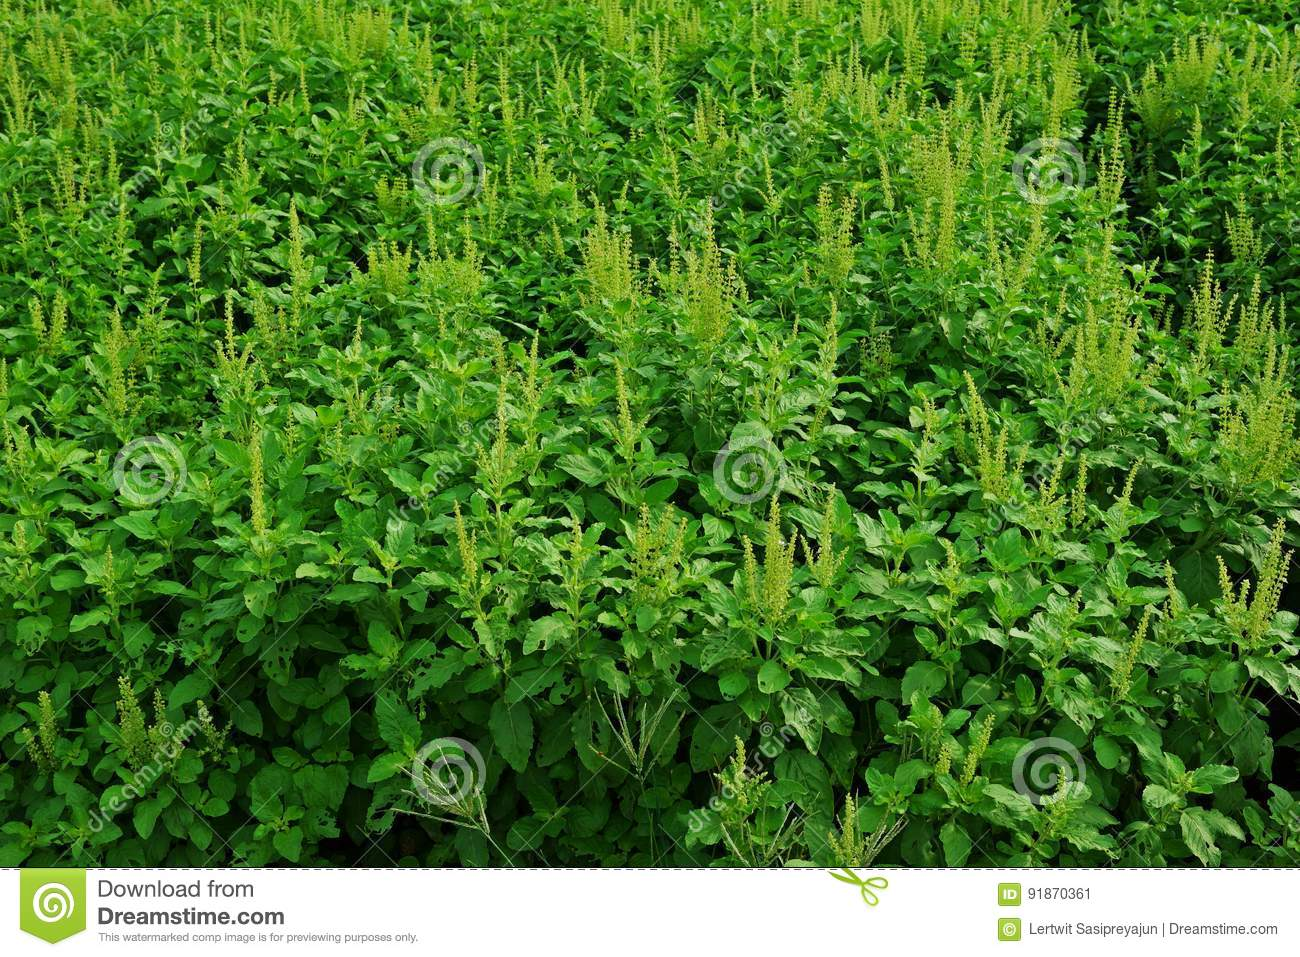 Holy basil production field